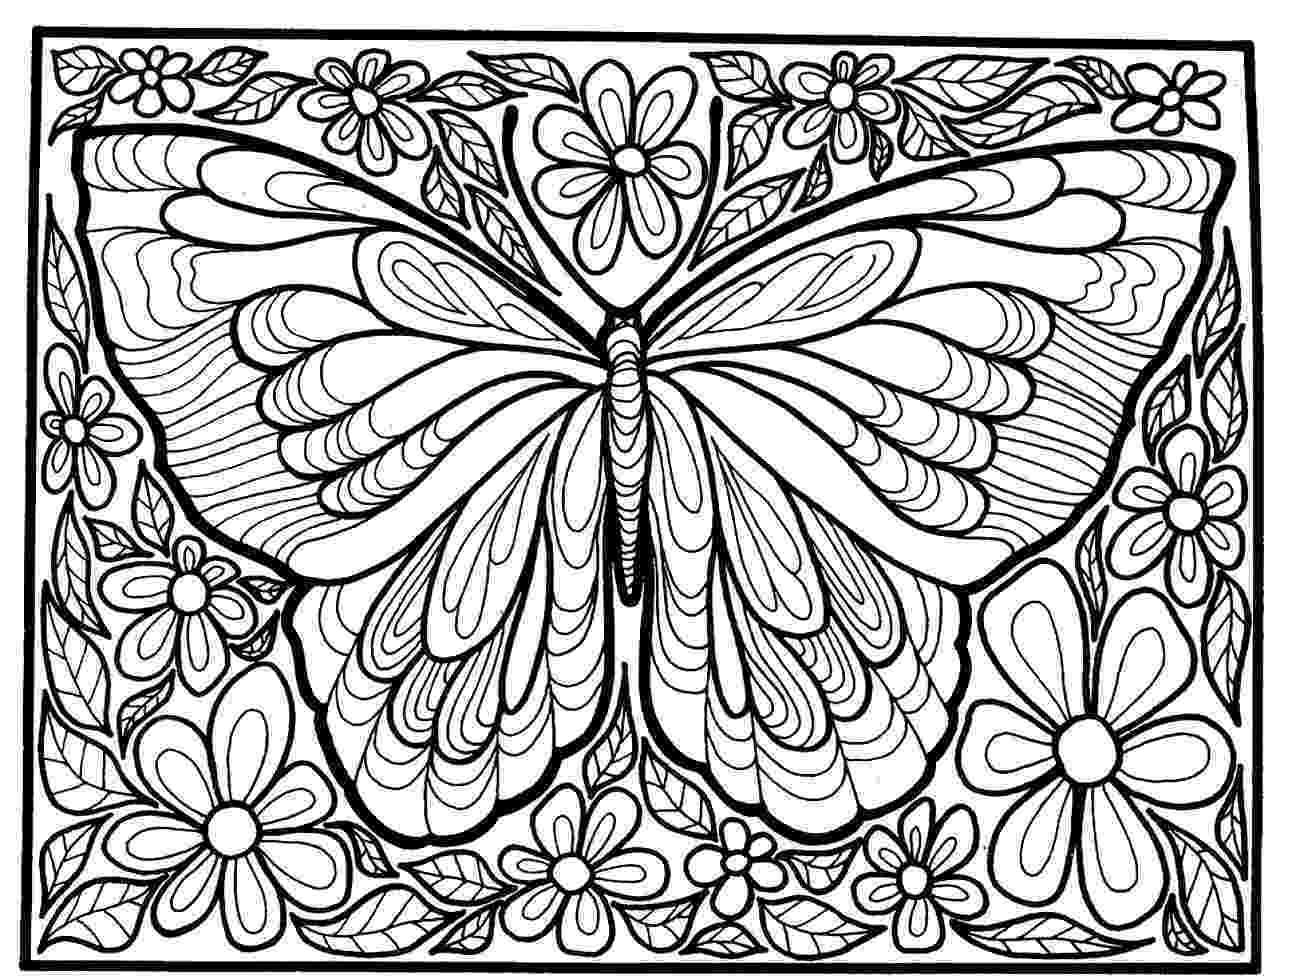 butterfly pictures to color and print printable butterfly coloring pages for kids cool2bkids color and to butterfly pictures print